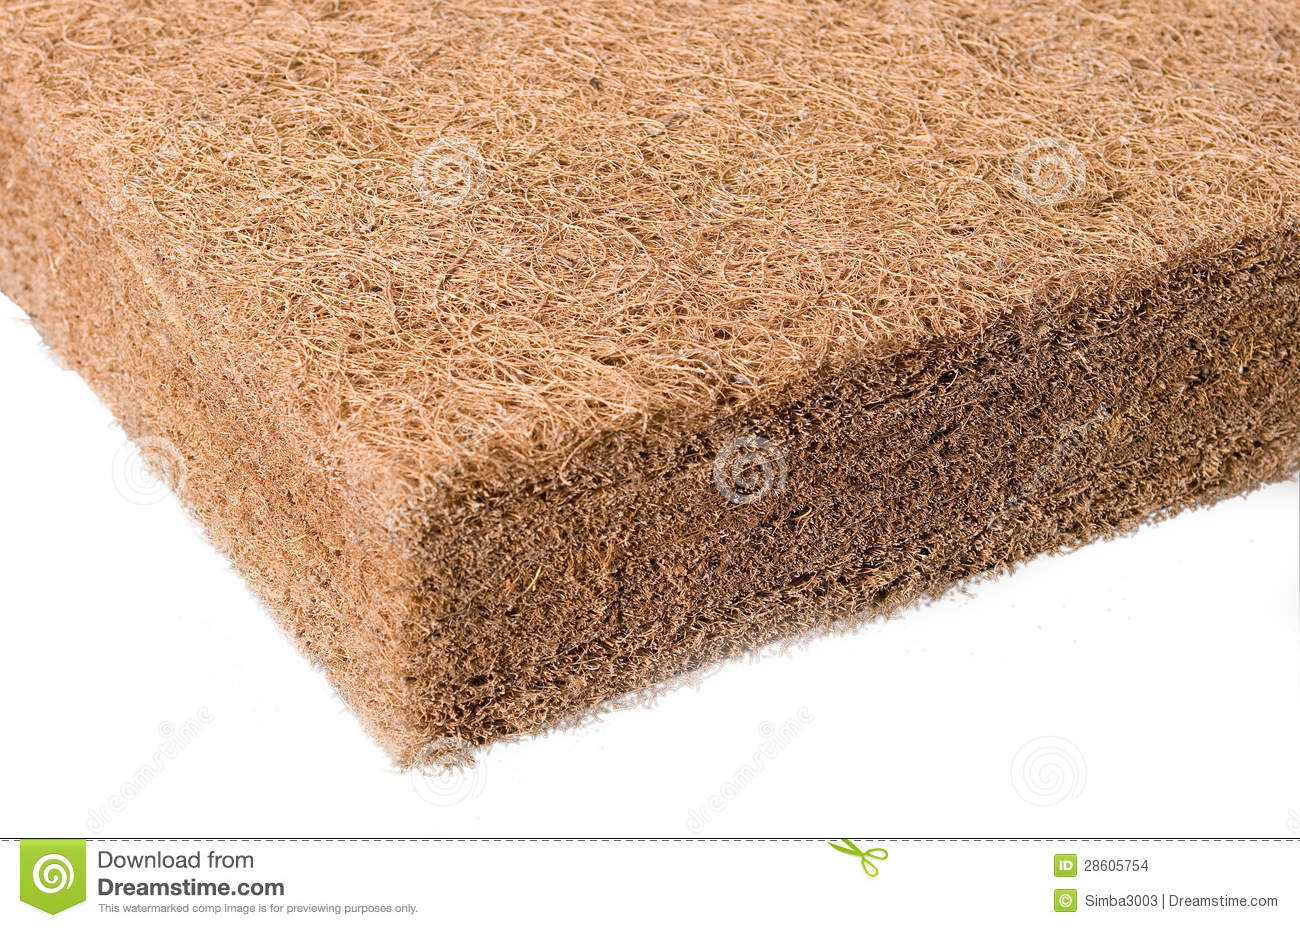 coir or coconut husk fiber stock images image 28605754. Black Bedroom Furniture Sets. Home Design Ideas